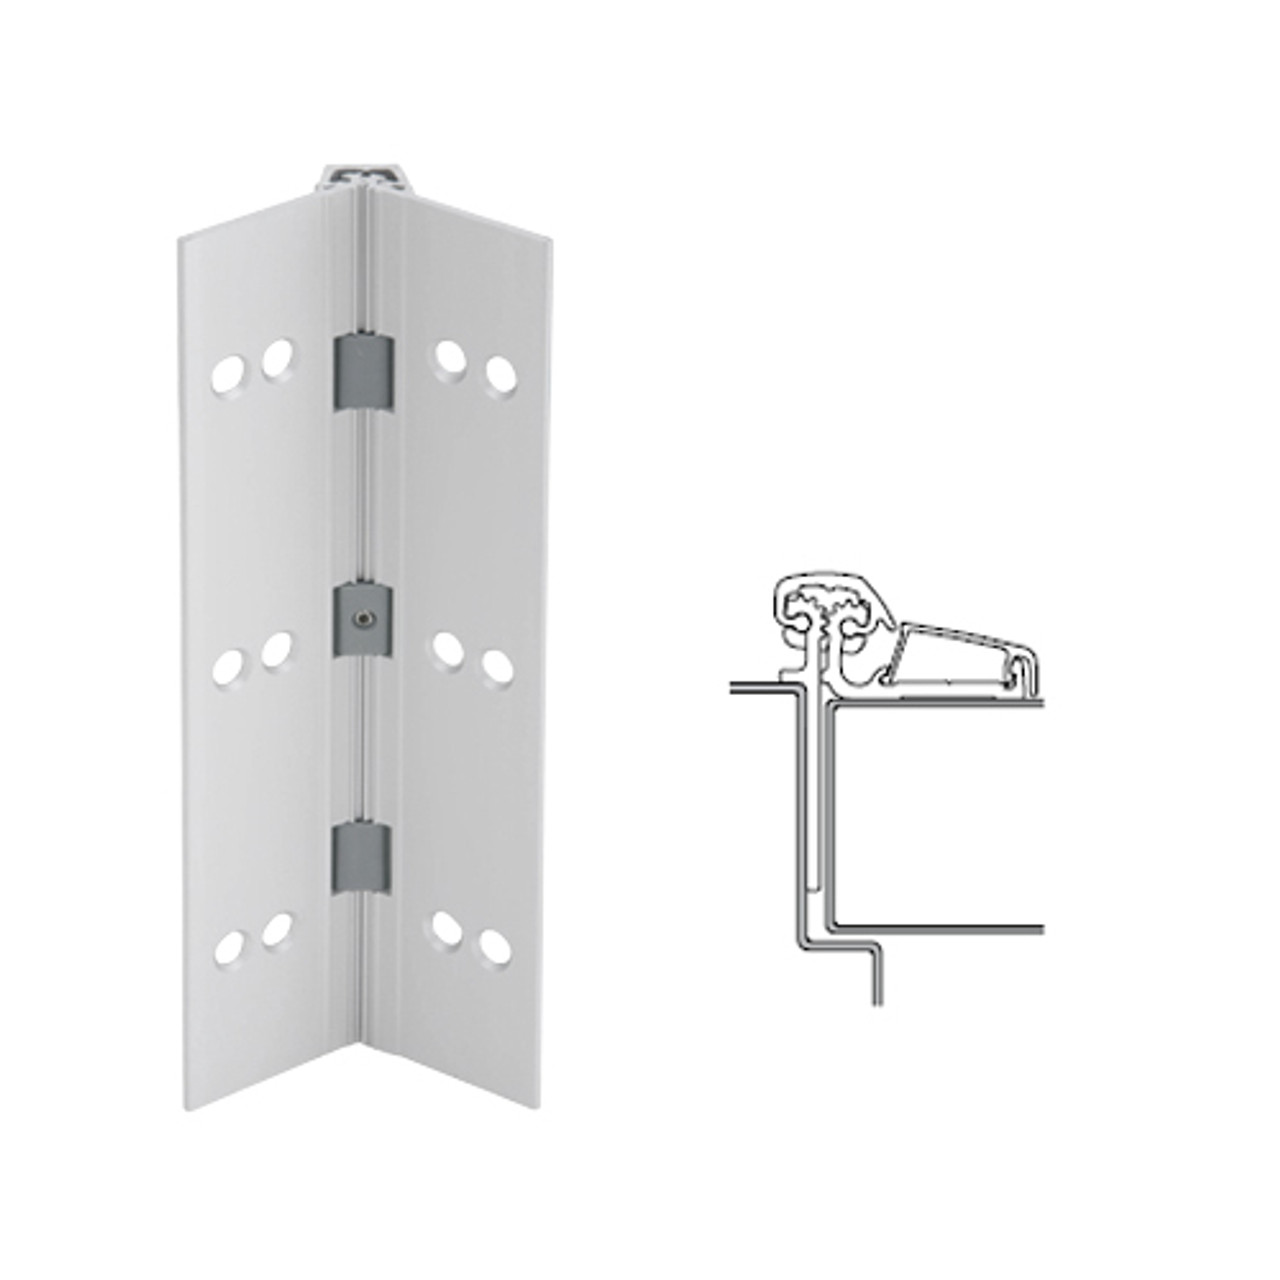 053XY-US28-120-TEKWD IVES Adjustable Half Surface Continuous Geared Hinges with Wood Screws in Satin Aluminum